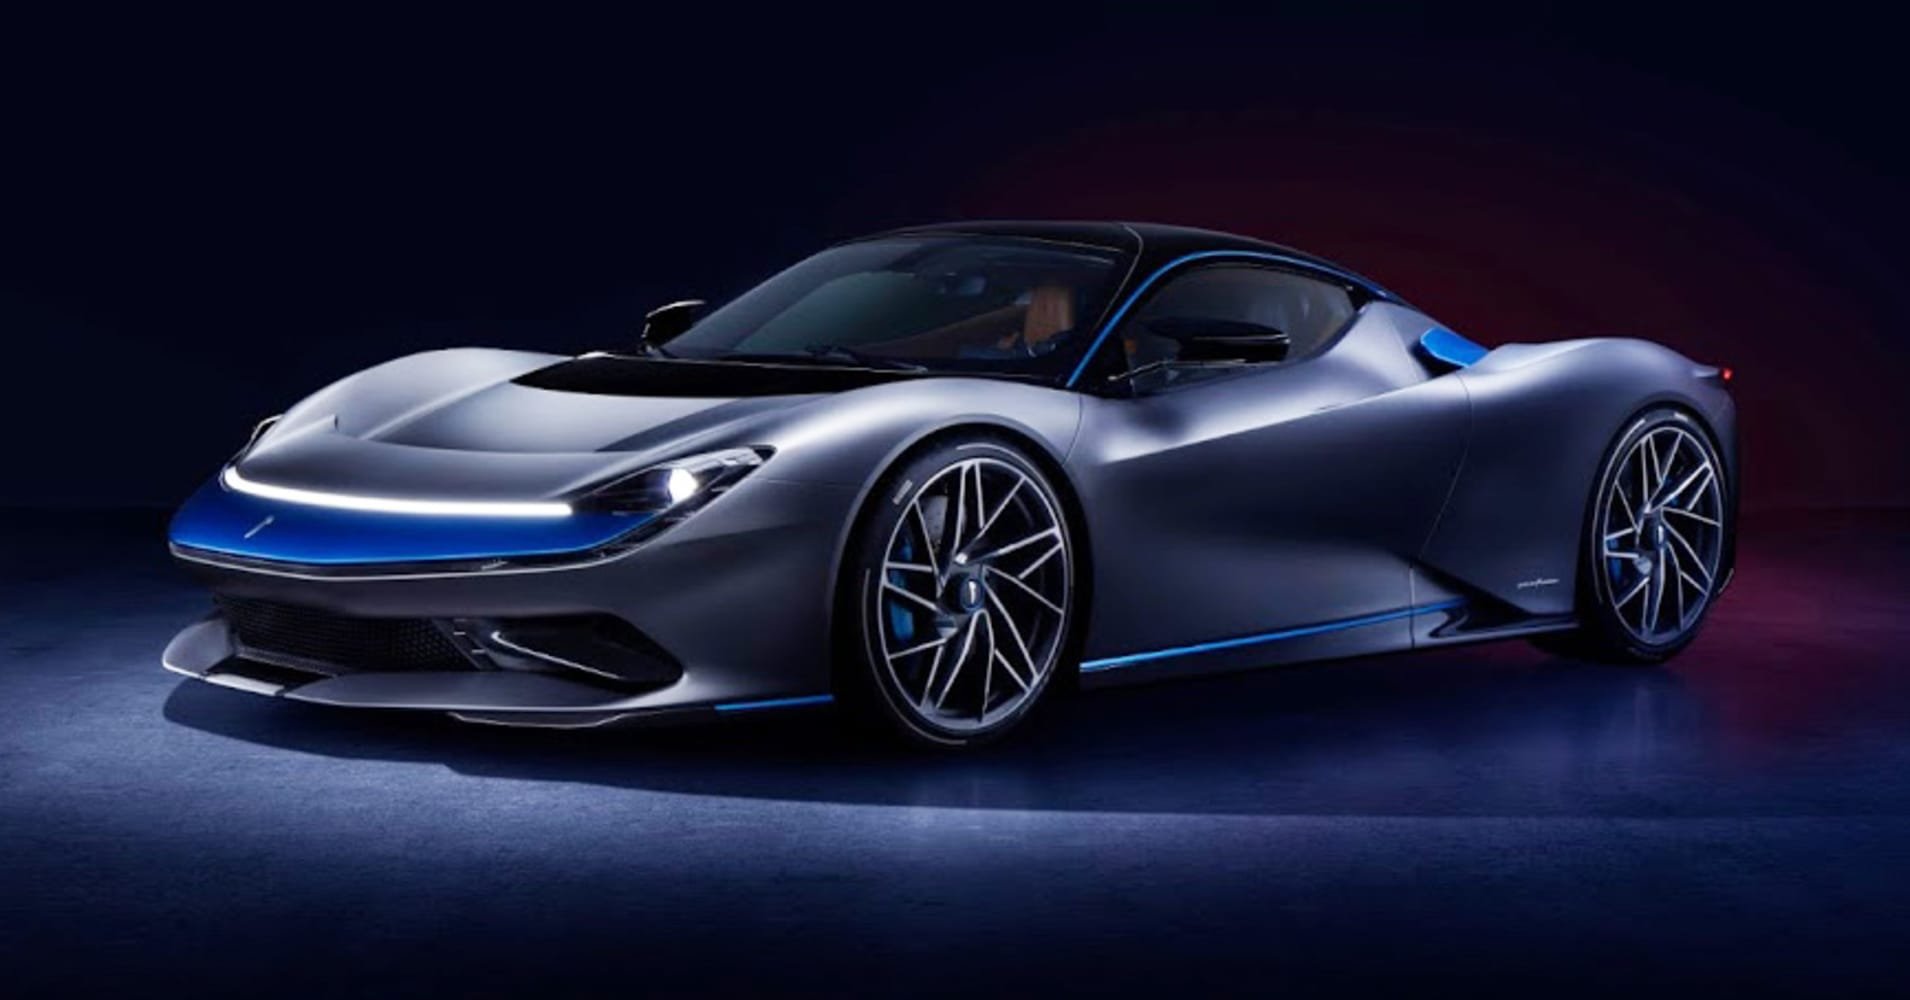 The $2.5 million Pininfarina Battista electric hypercar debuts in US